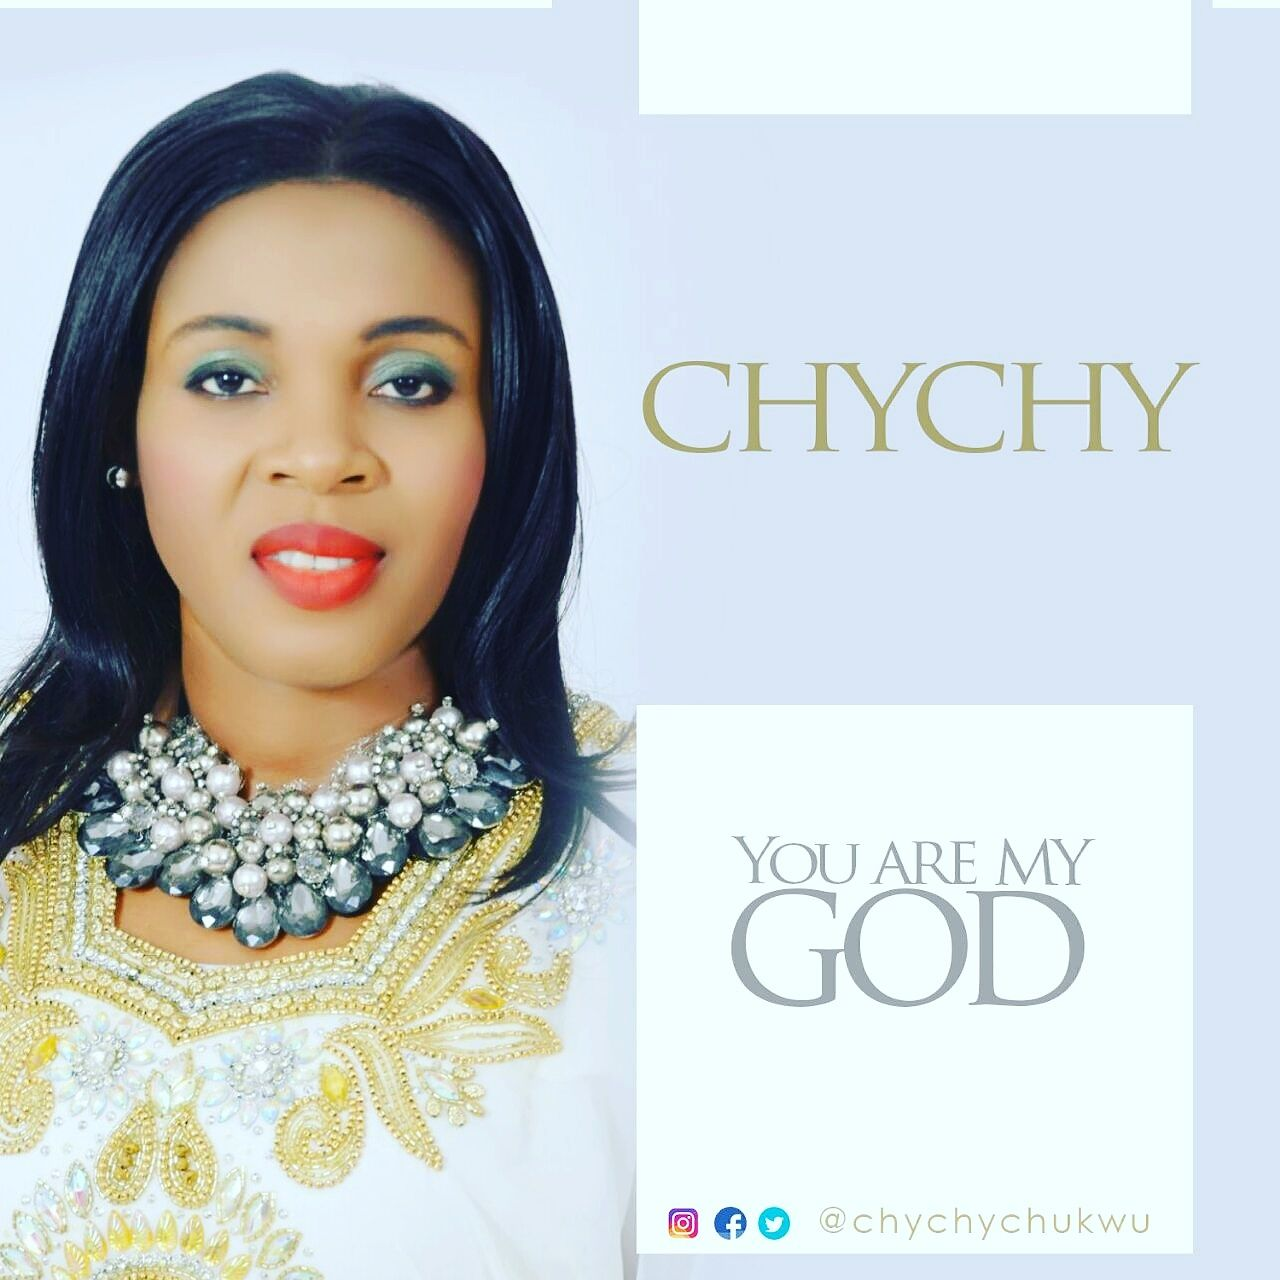 YOU ARE MY GOD - Chychy [@chychychukwu]